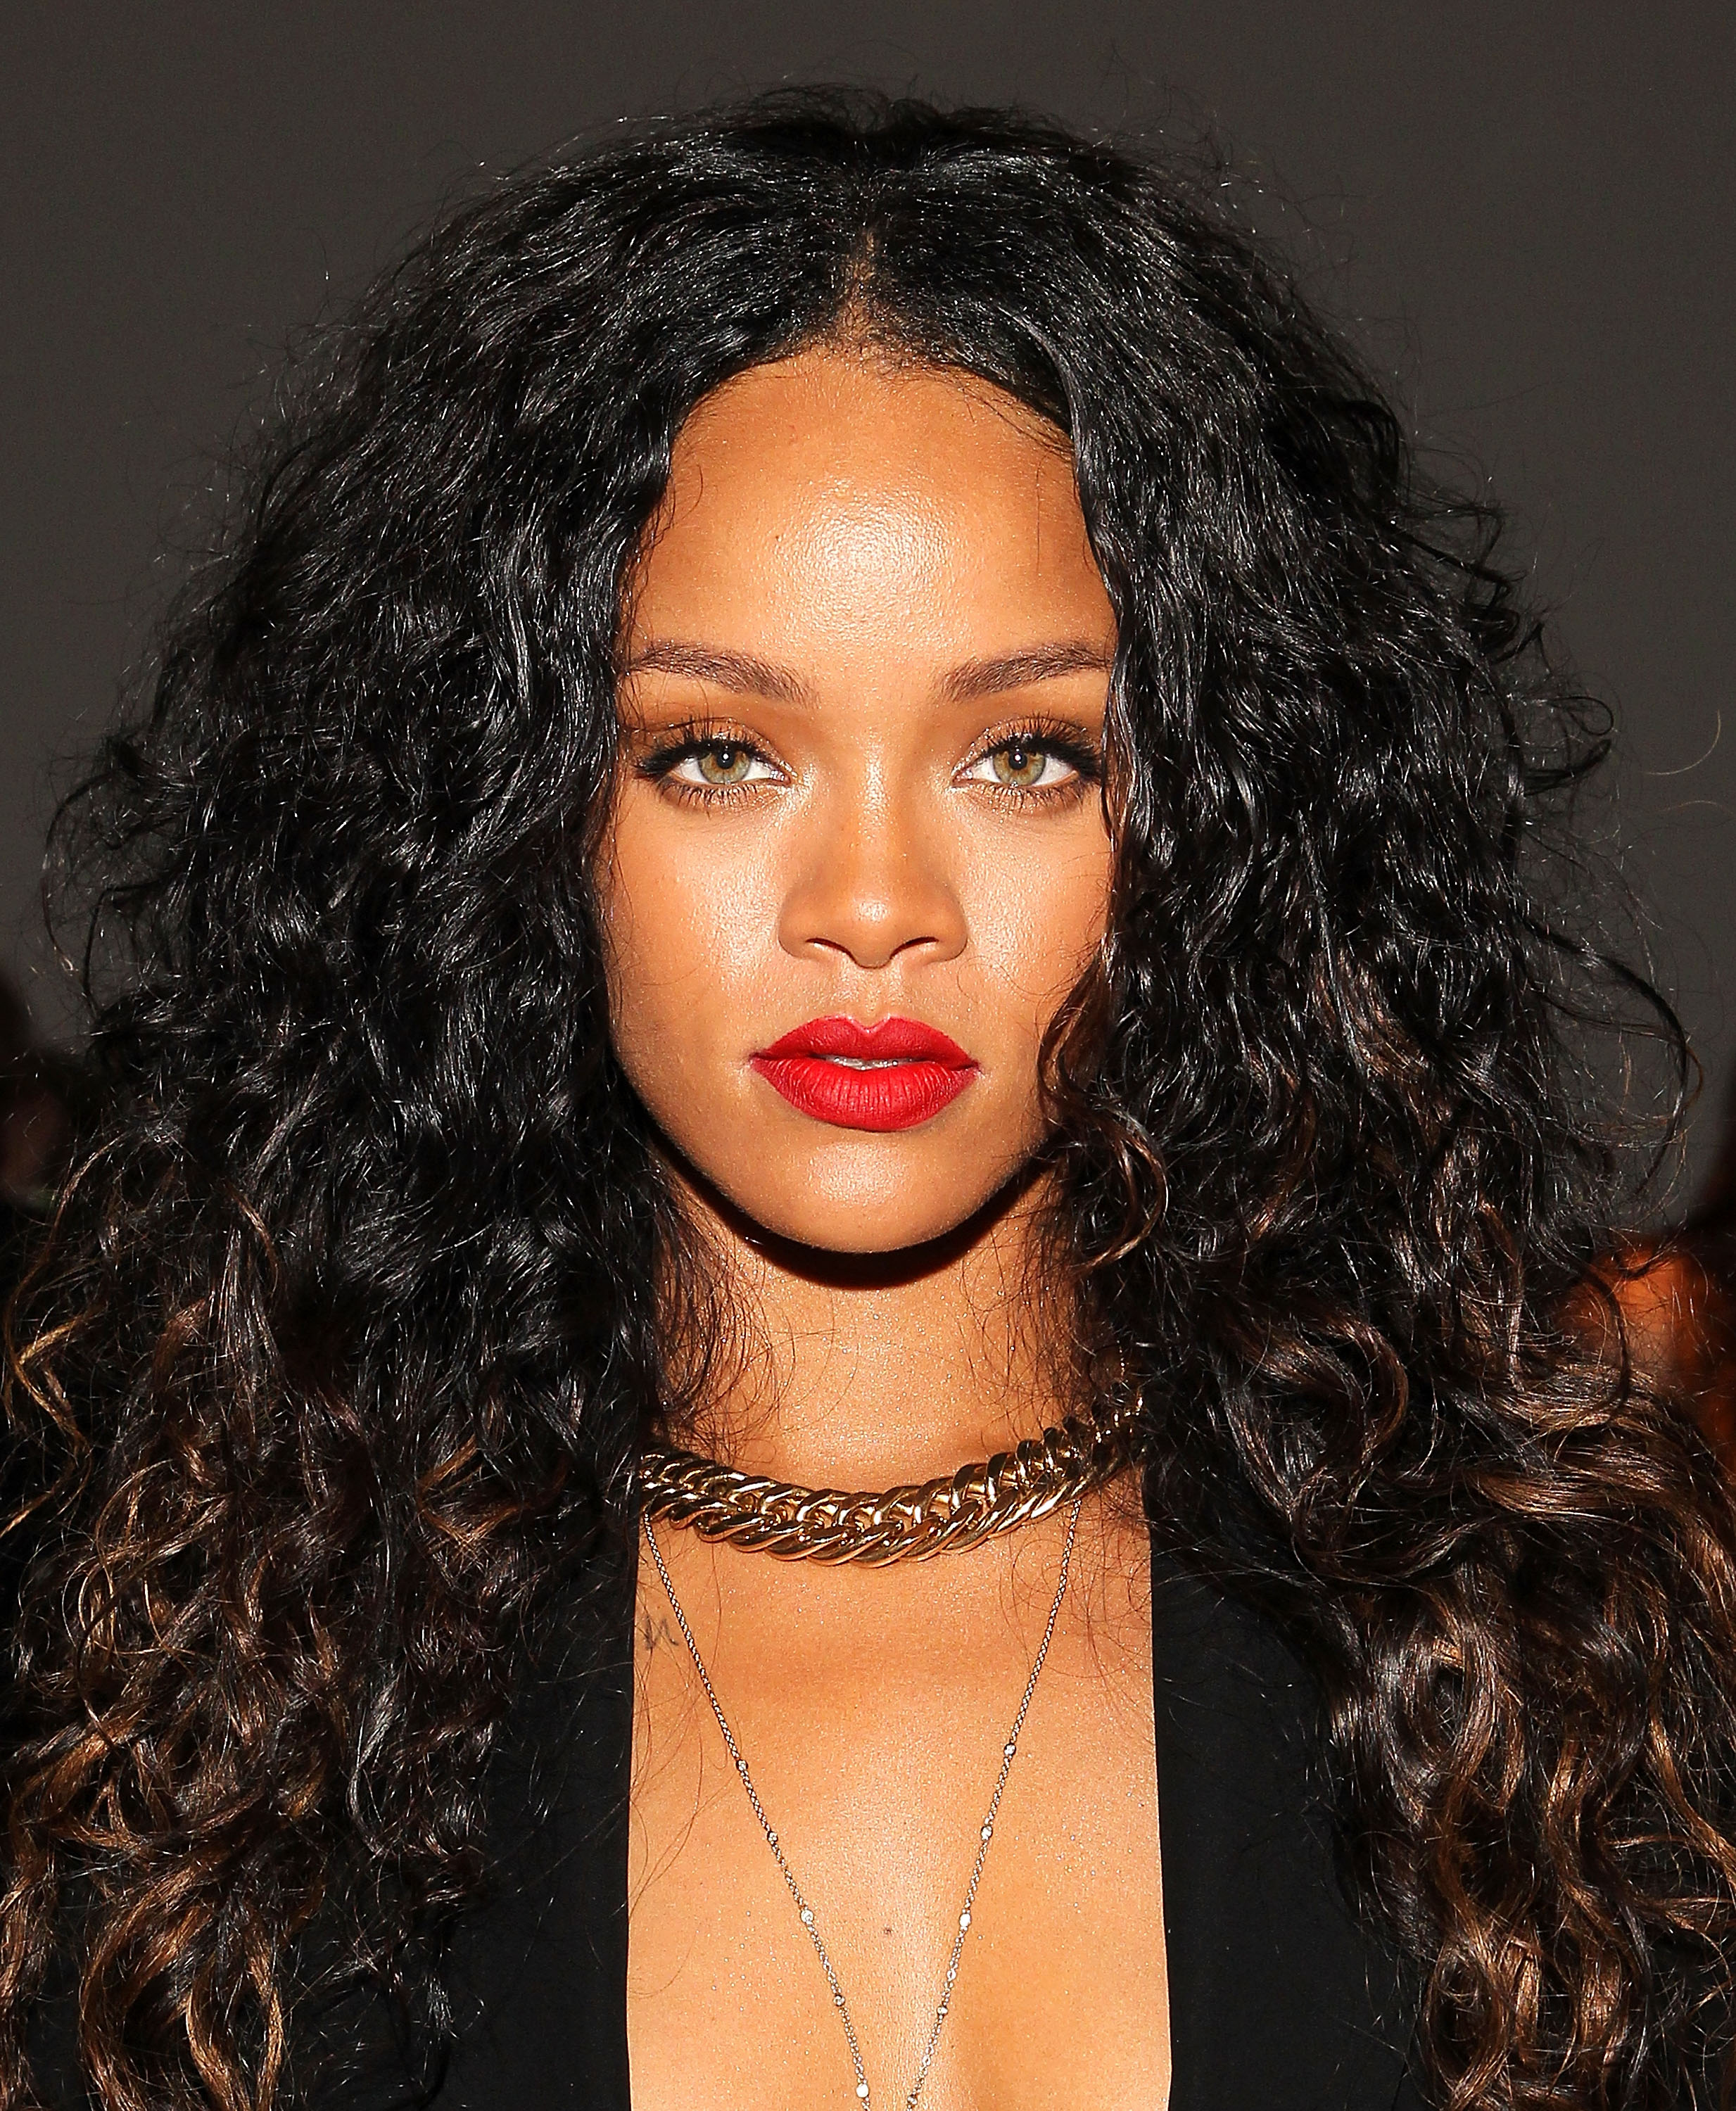 Rihanna attends the Altuzarra show during Mercedes-Benz Fashion Week Spring 2015 at Spring Studios on September 6, 2014 in New York City.